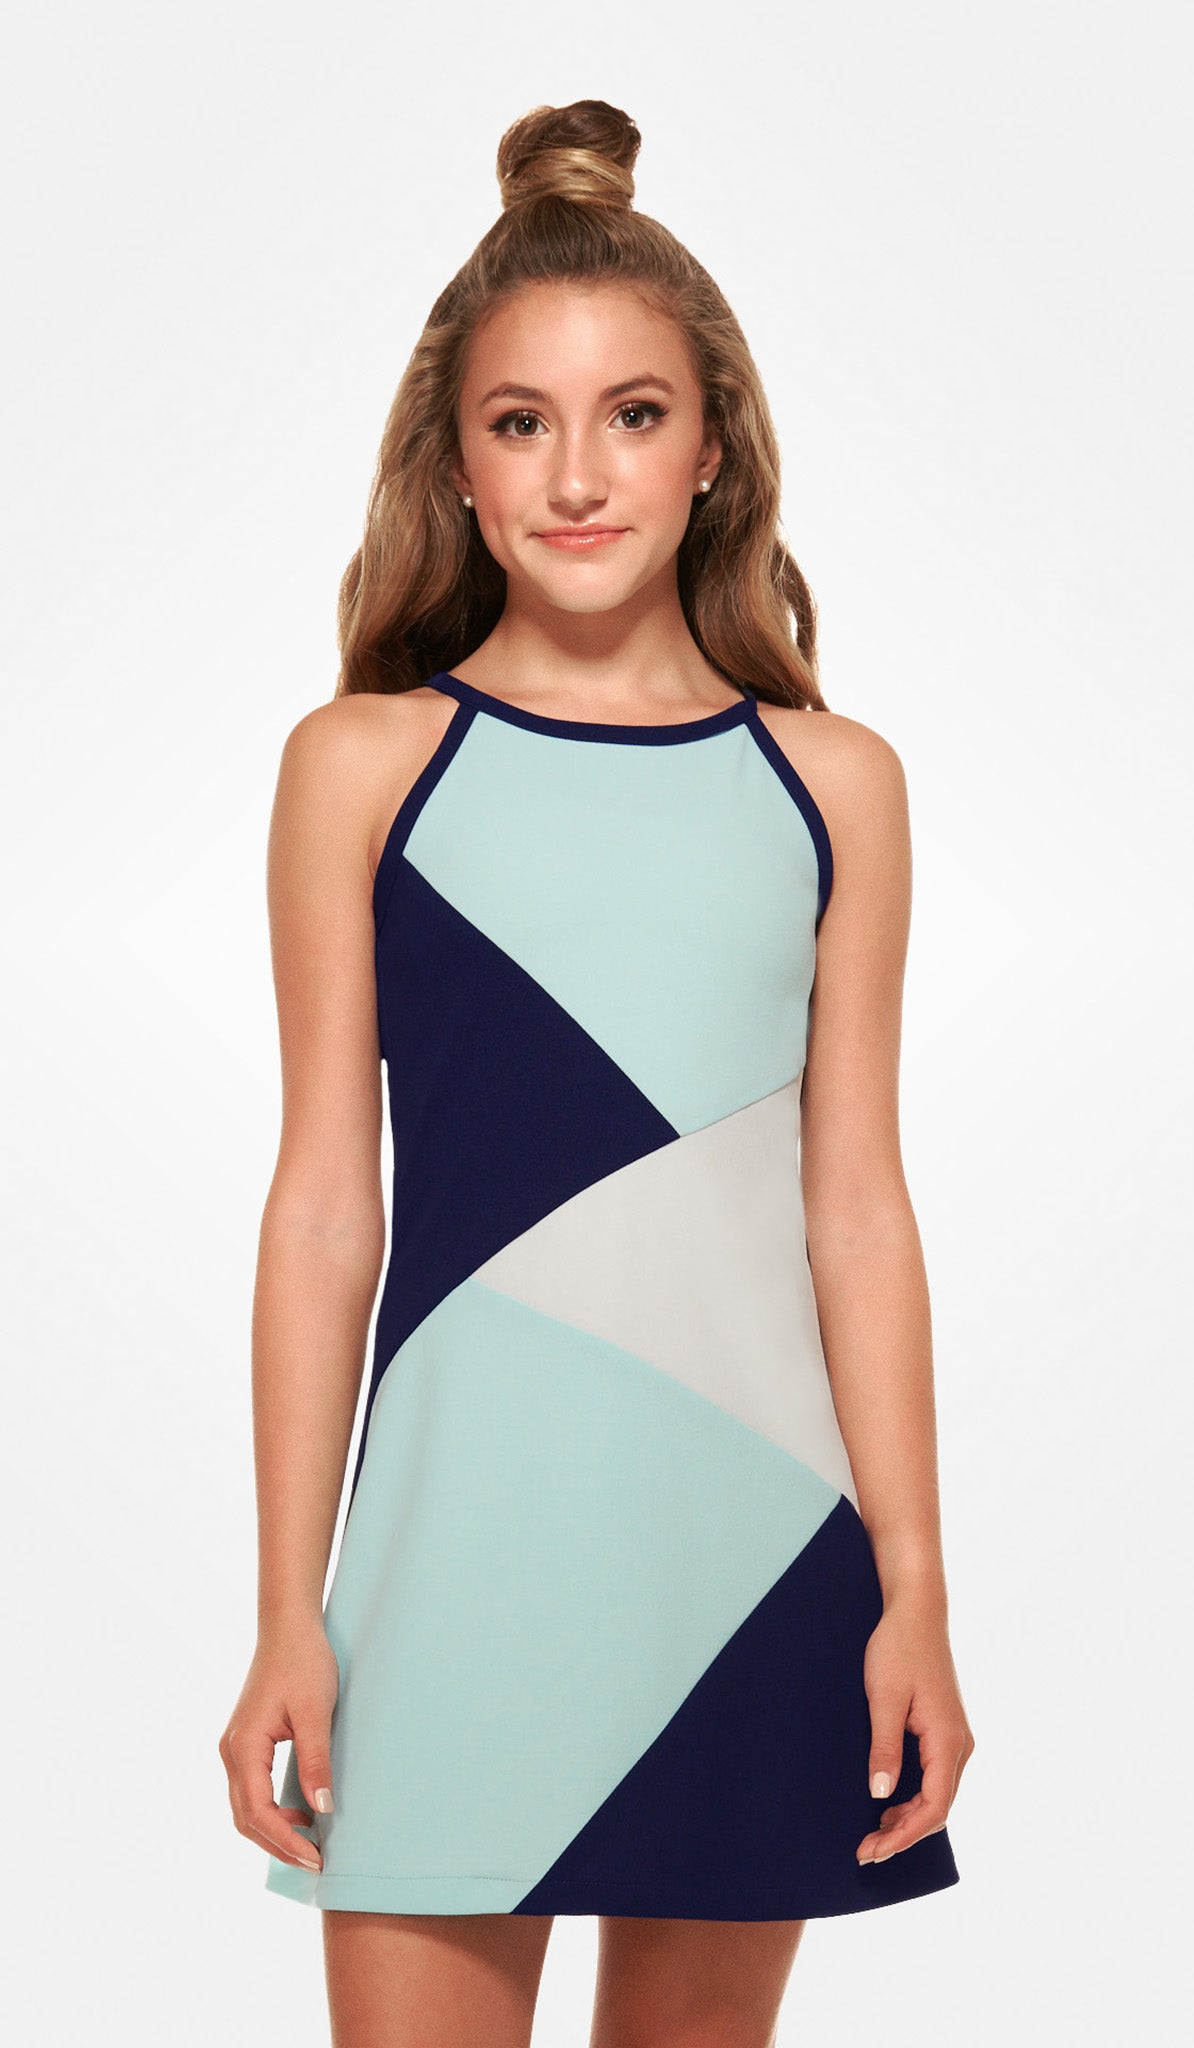 THE SOUTH BEACH DRESS - Sallymiller.com - [variant title] - | Event & Party Dresses for Tween Girls & Juniors | Weddings Dresses, Bat Mitzvah Dresses, Sweet Sixteen Dresses, Graduation Dresses, Birthday Party Dresses, Bar Mitzvah Dresses, Cotillion Dresses